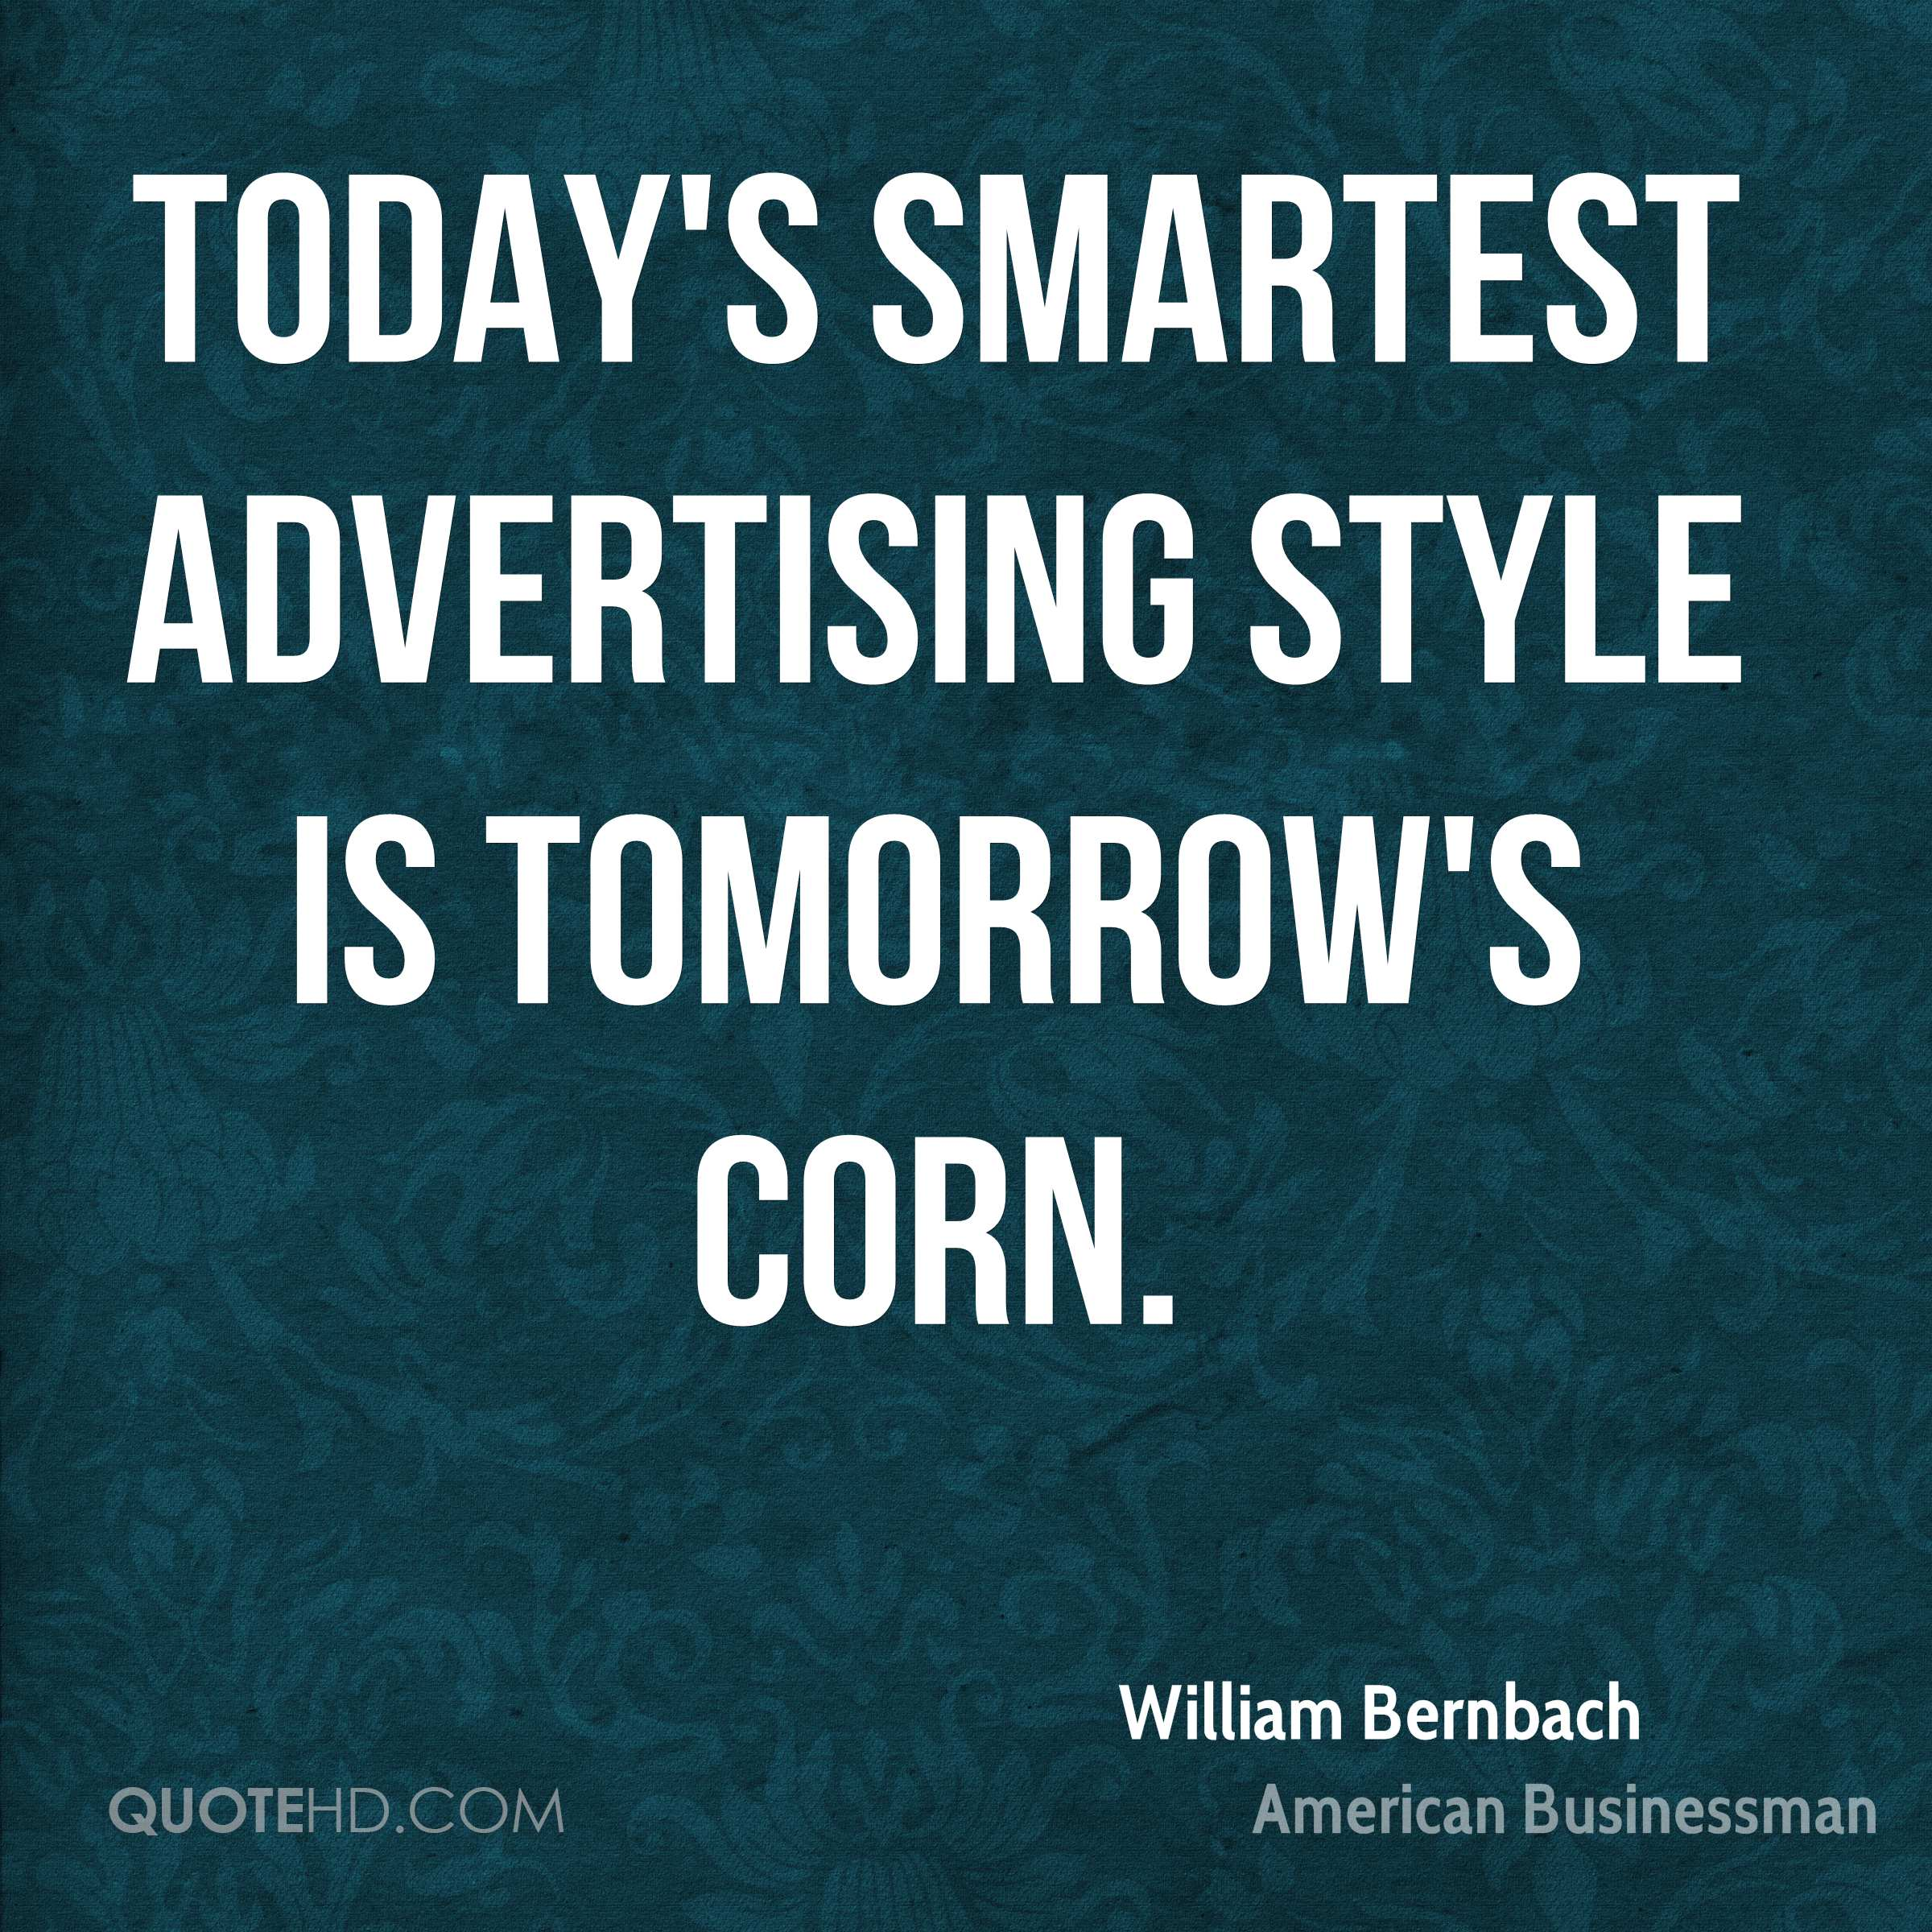 Today's smartest advertising style is tomorrow's corn.